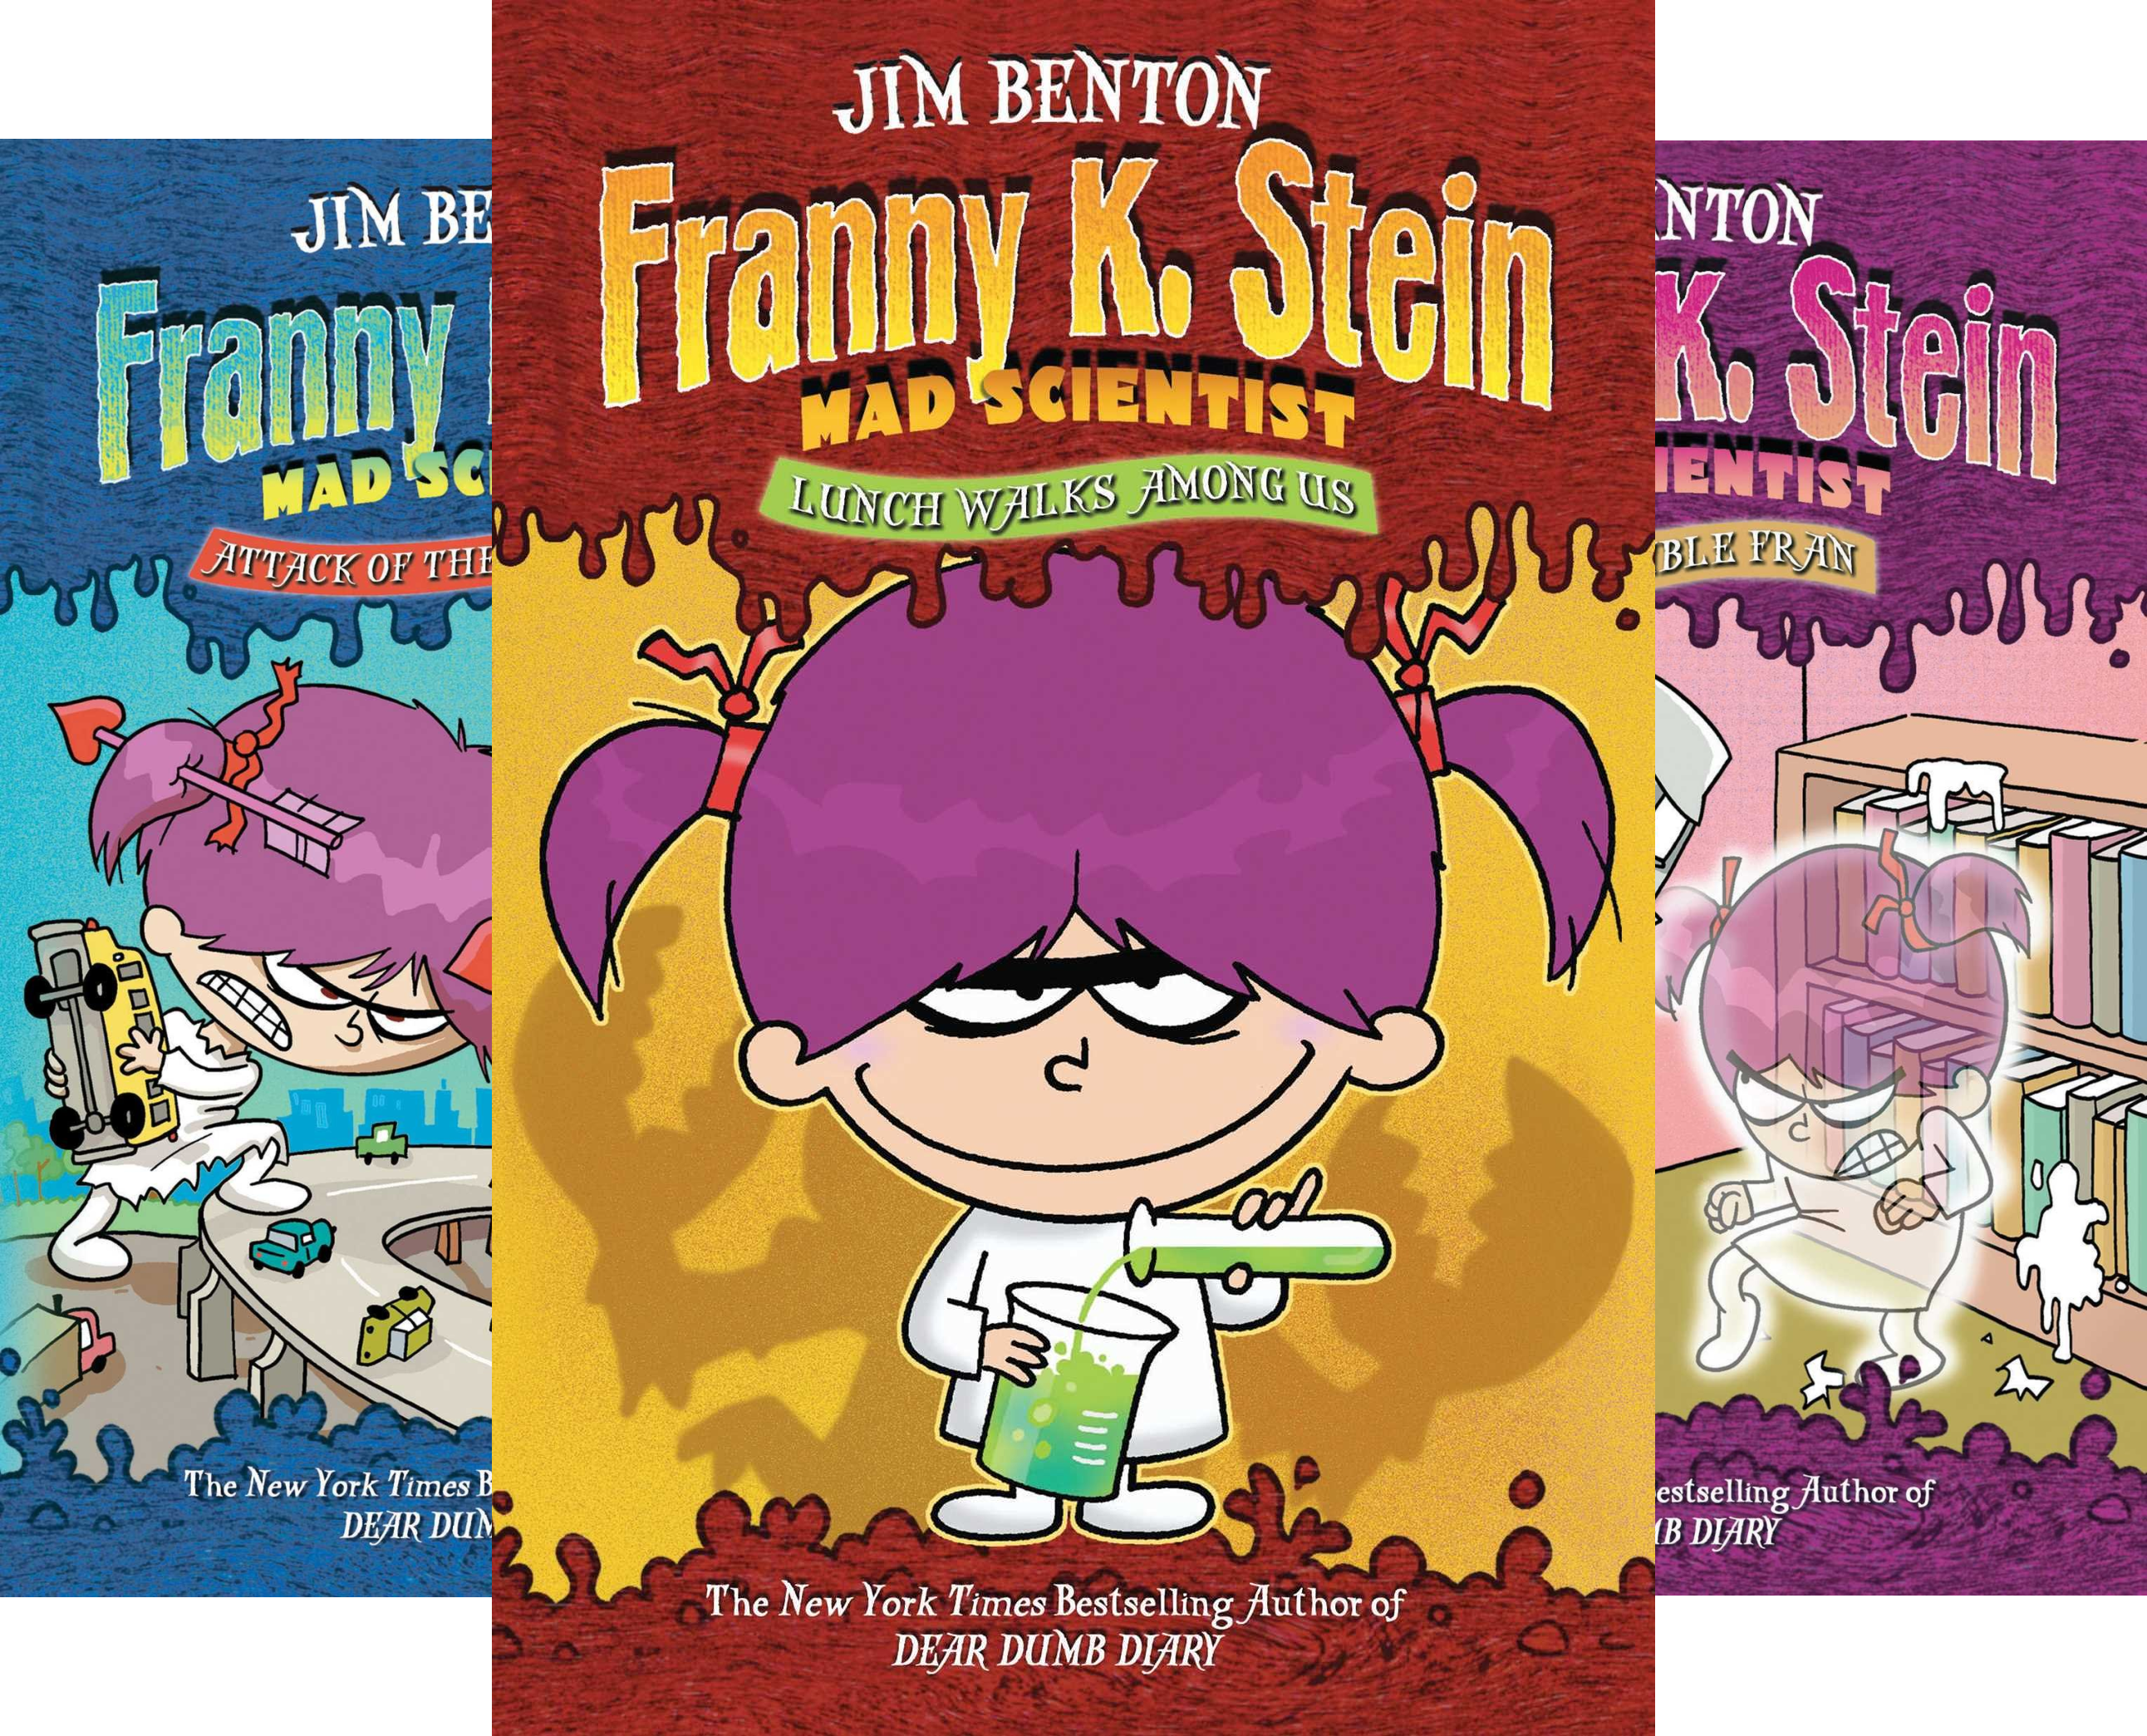 ate of Danger (Boxed Set): Lunch Walks Among Us; Attack of the 50-Ft. Cupid; The Invisible Fran; The Fran That Time Forgot (Franny K. Stein, Mad Scientist) (4 Book Series) ()